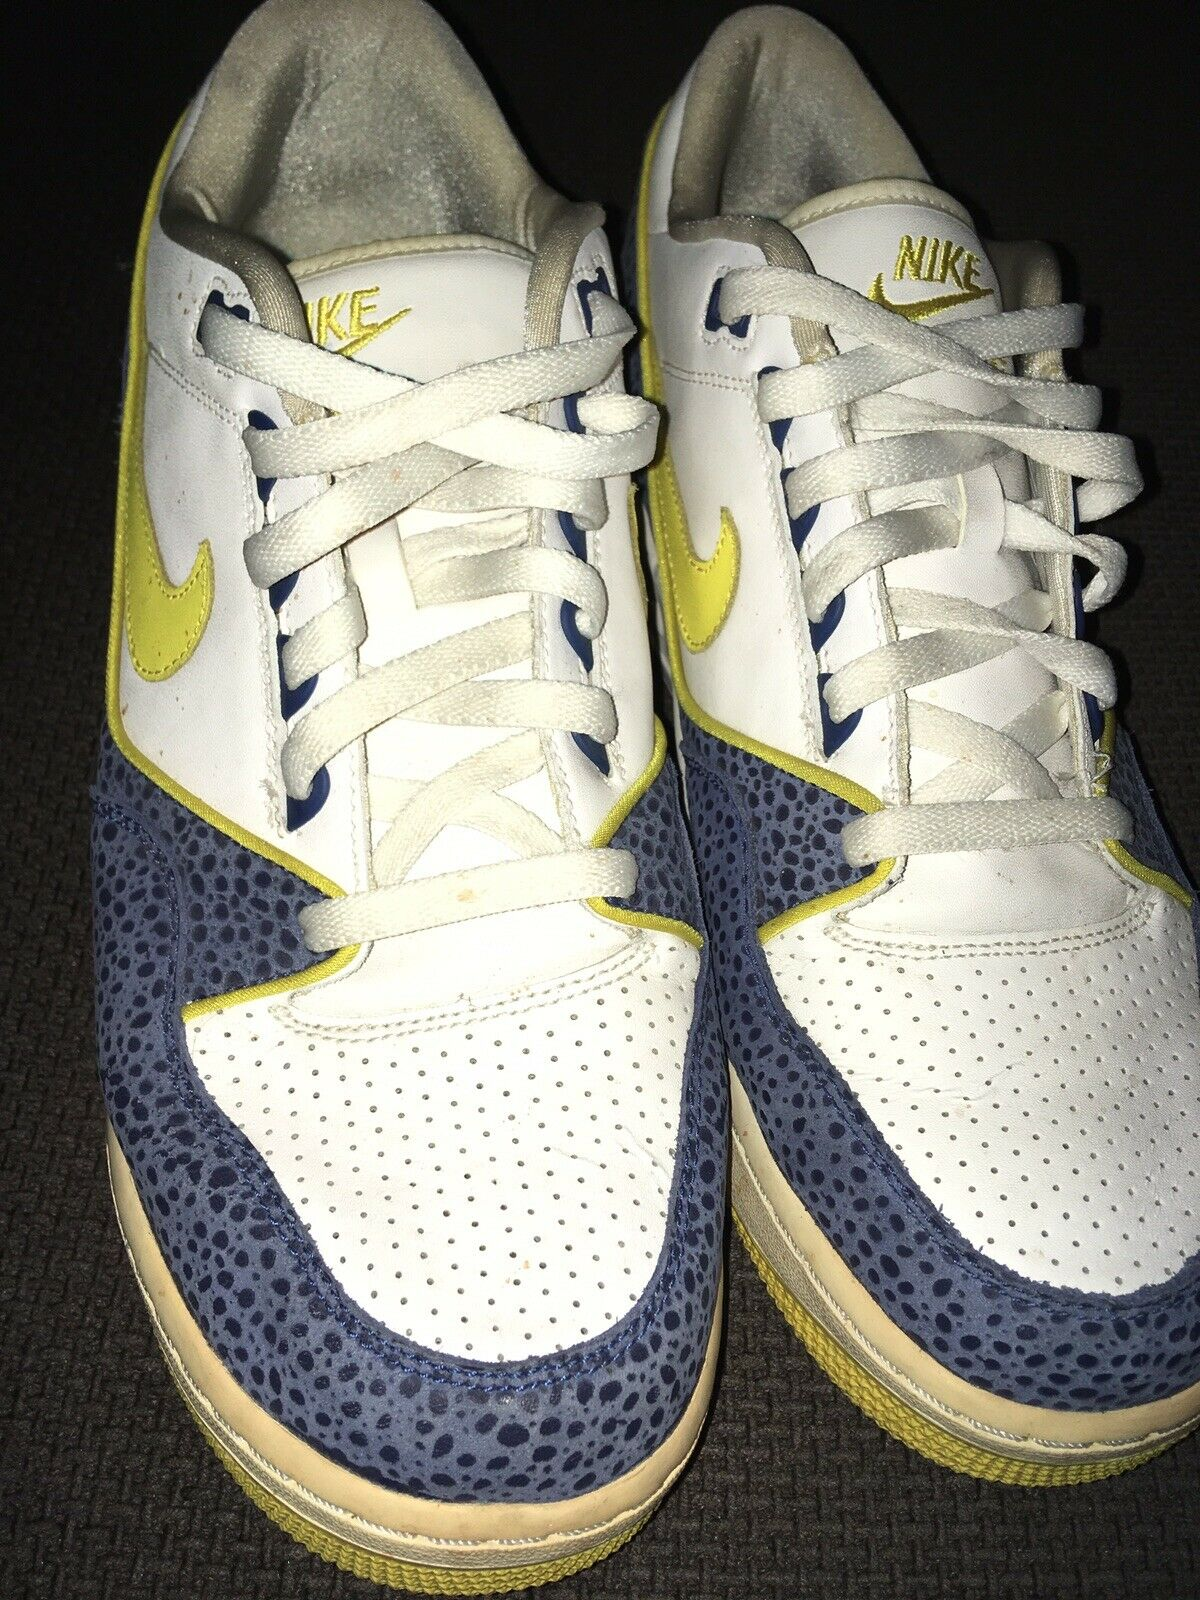 NIKE Air Max Assault White bluee Yellow Sz 12 Mens Low Top Athletic shoes Sneaker